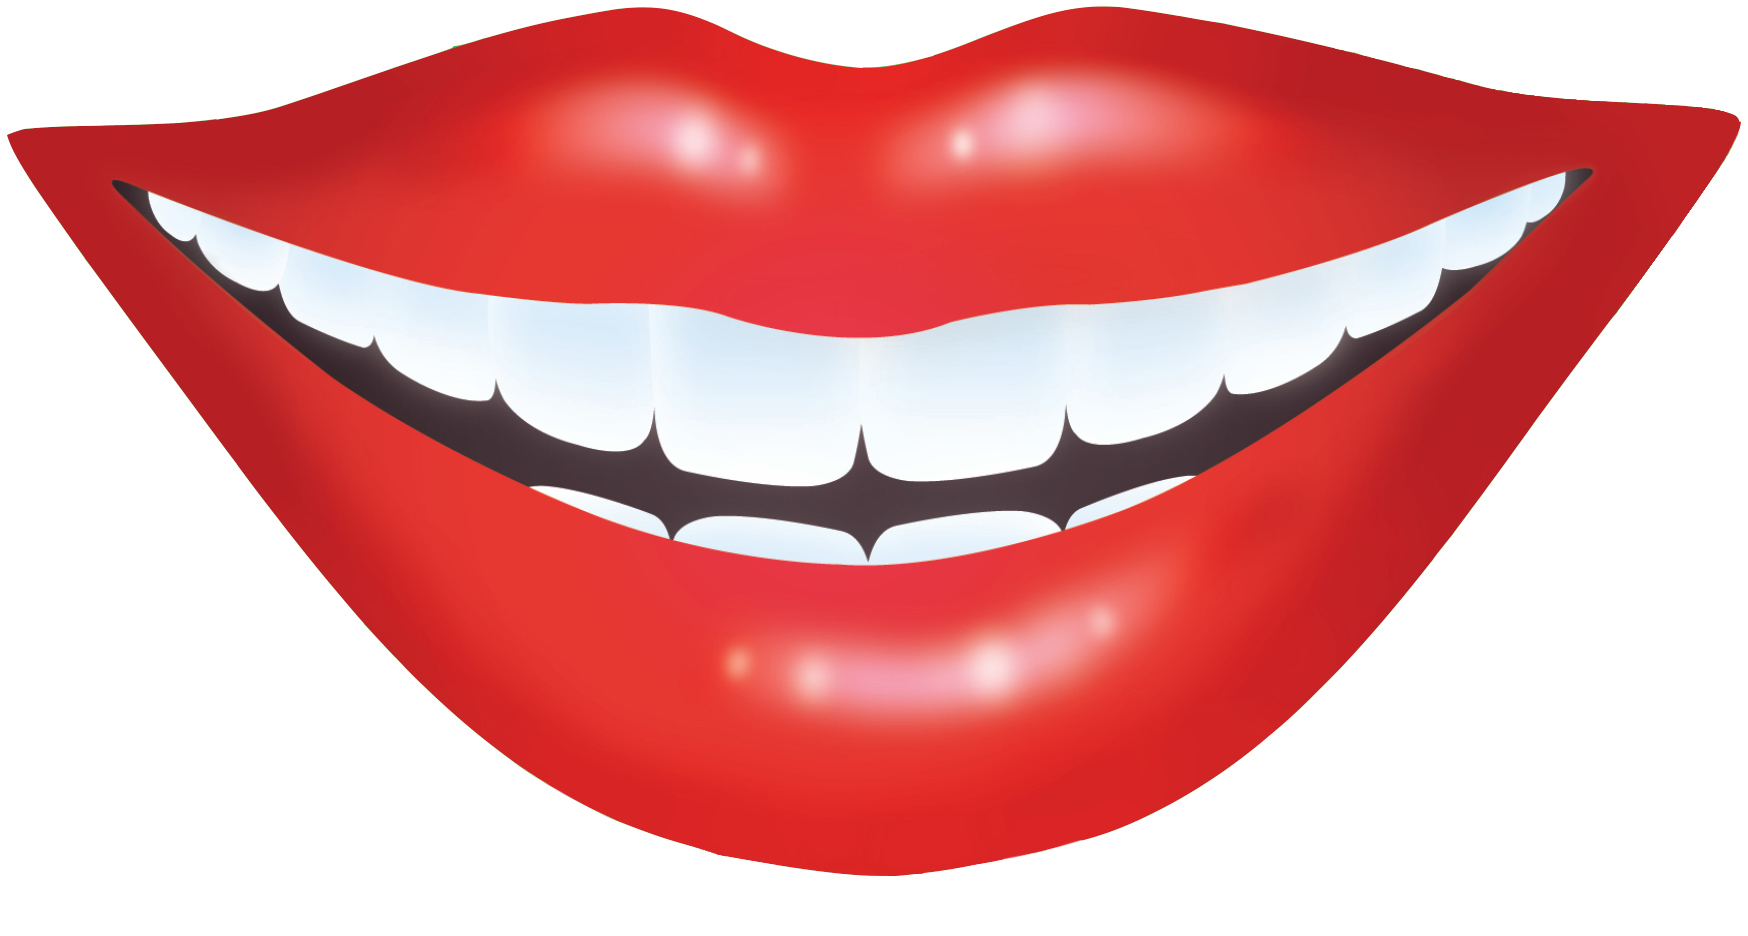 Lips Clipart Toon Lips Toon Transparent Free For Download On Webstockreview 2020